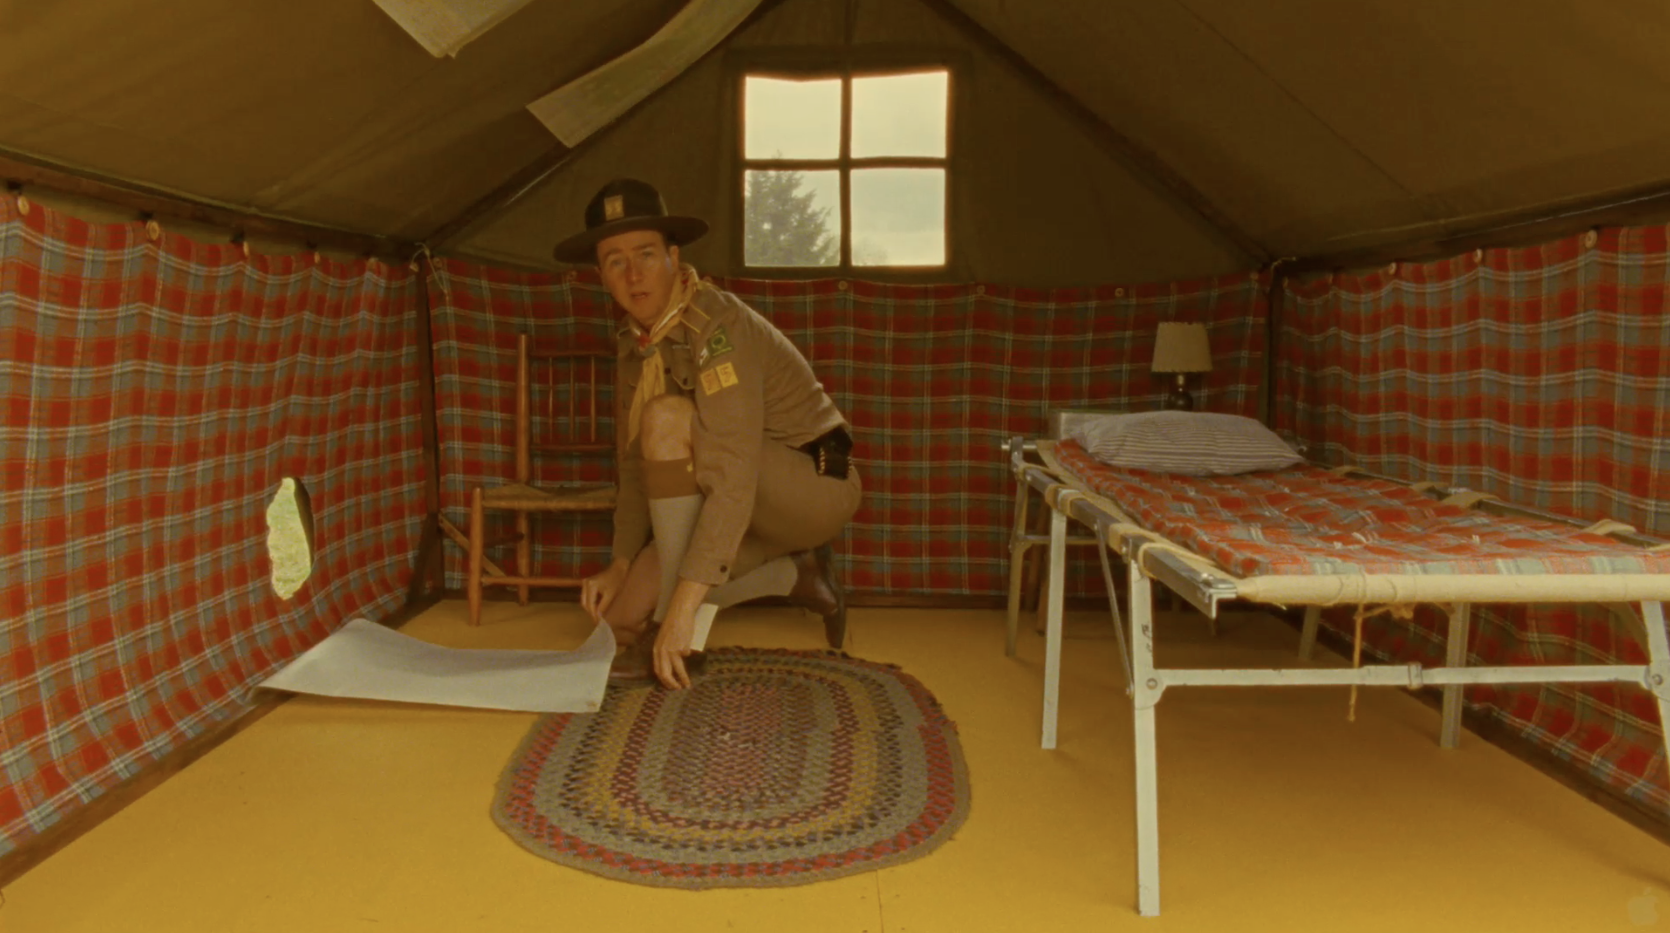 netflix roulette Moonrise Kingdom Inspired Home Design